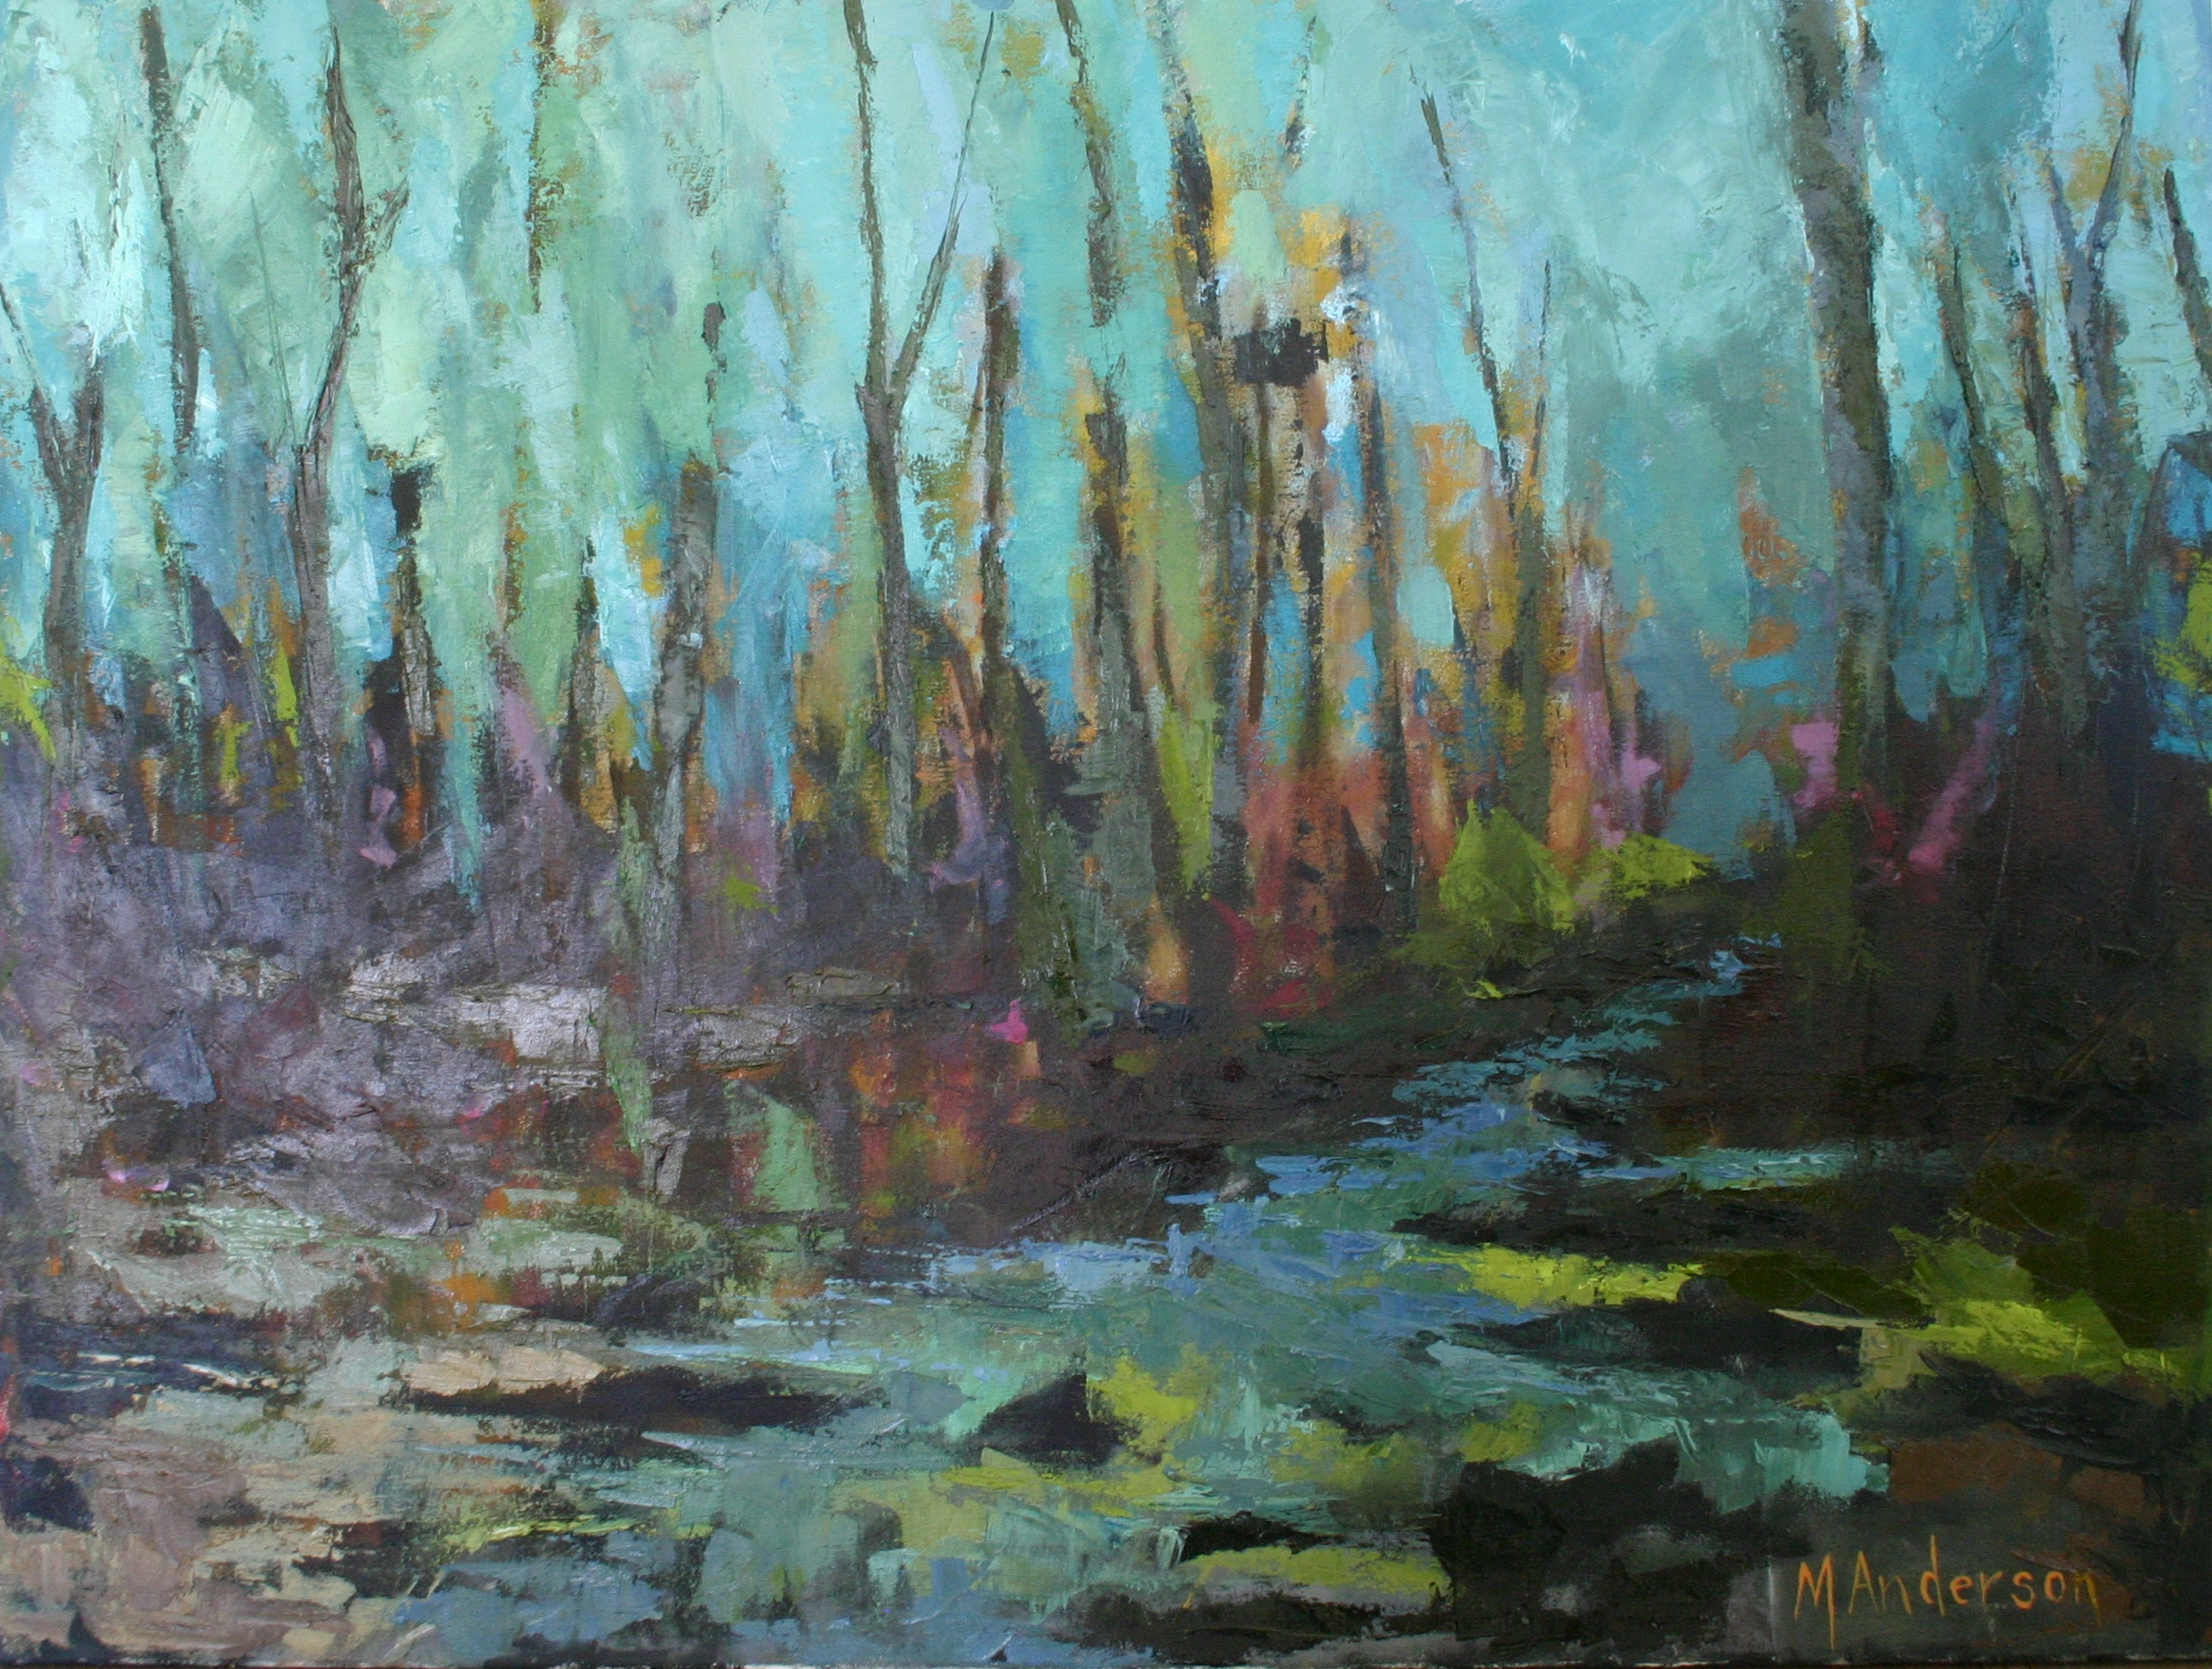 Black River (30x40 Canvas) - Sold